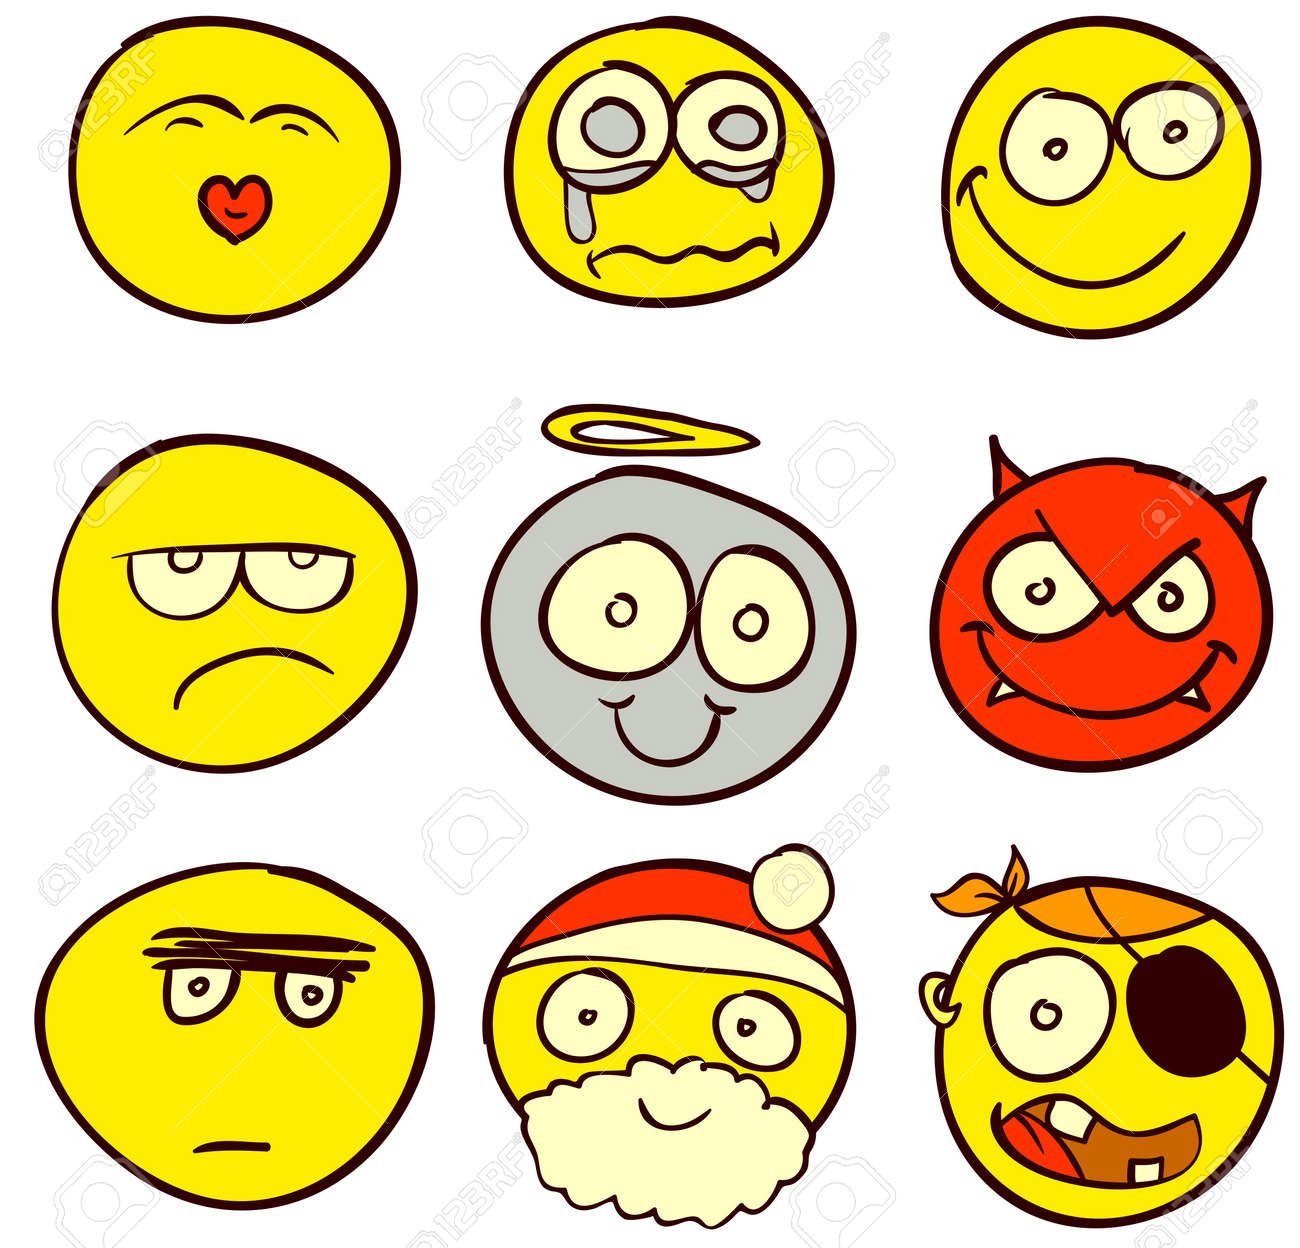 A set of 9 smileys for every taste. Done in comic doodle style. Stock Vector - 17934160